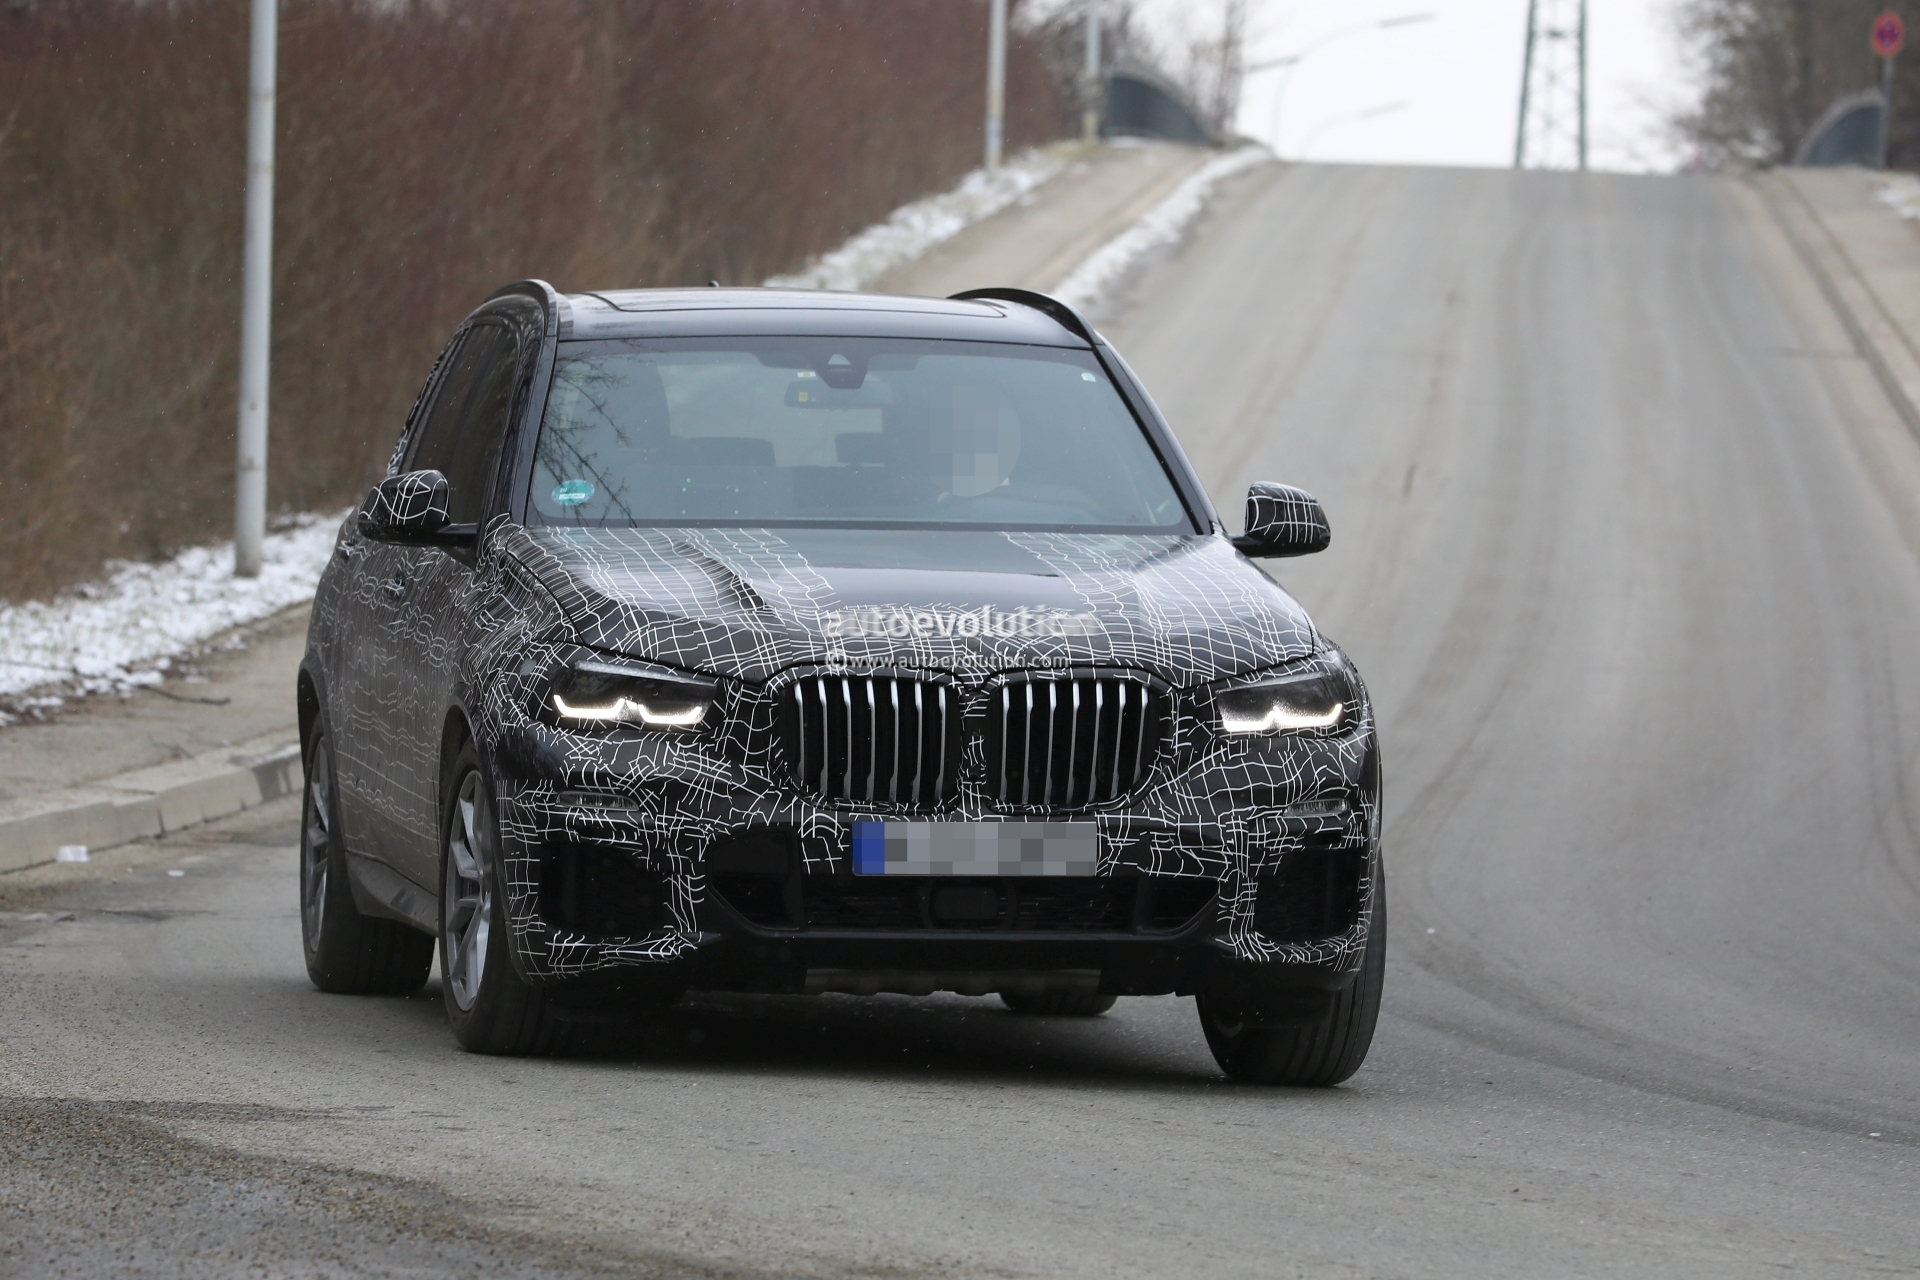 Spyshots 2019 Bmw X5 Prototype Shows Front End Details With